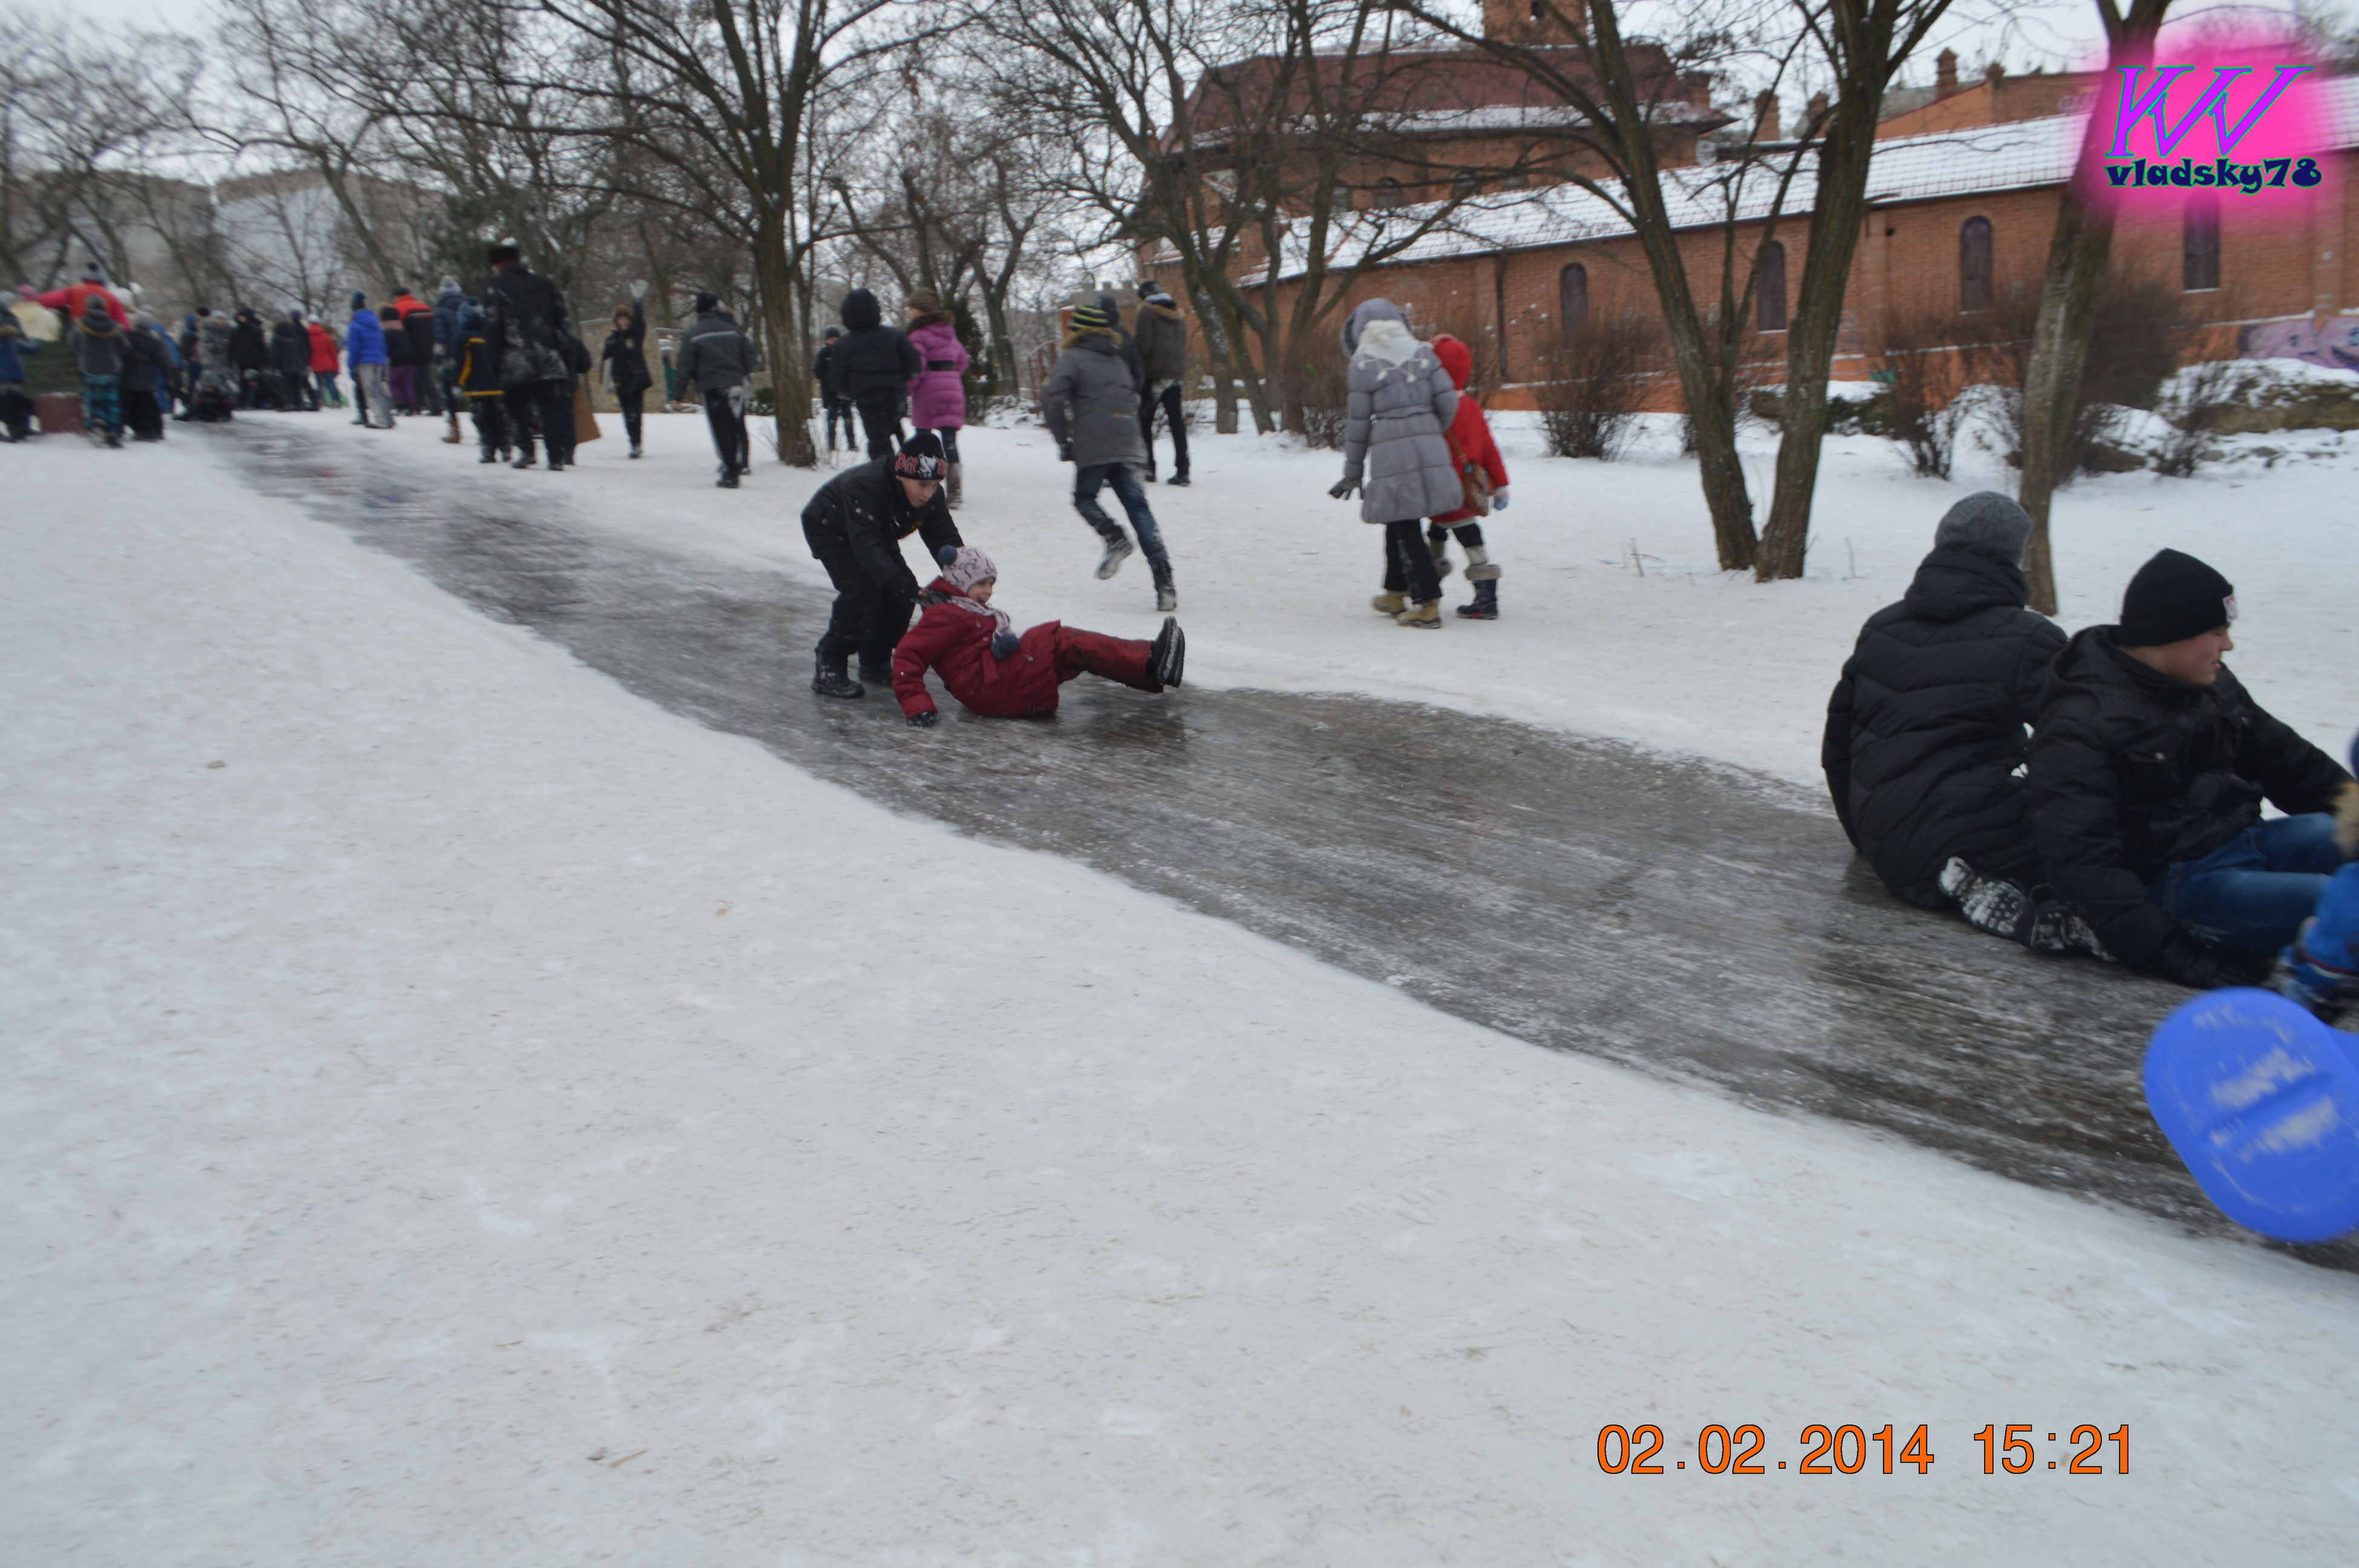 winter, leisure activity, real people, tree, day, outdoors, cold temperature, childhood, sitting, warm clothing, lifestyles, men, snow, nature, ice rink, people, adult